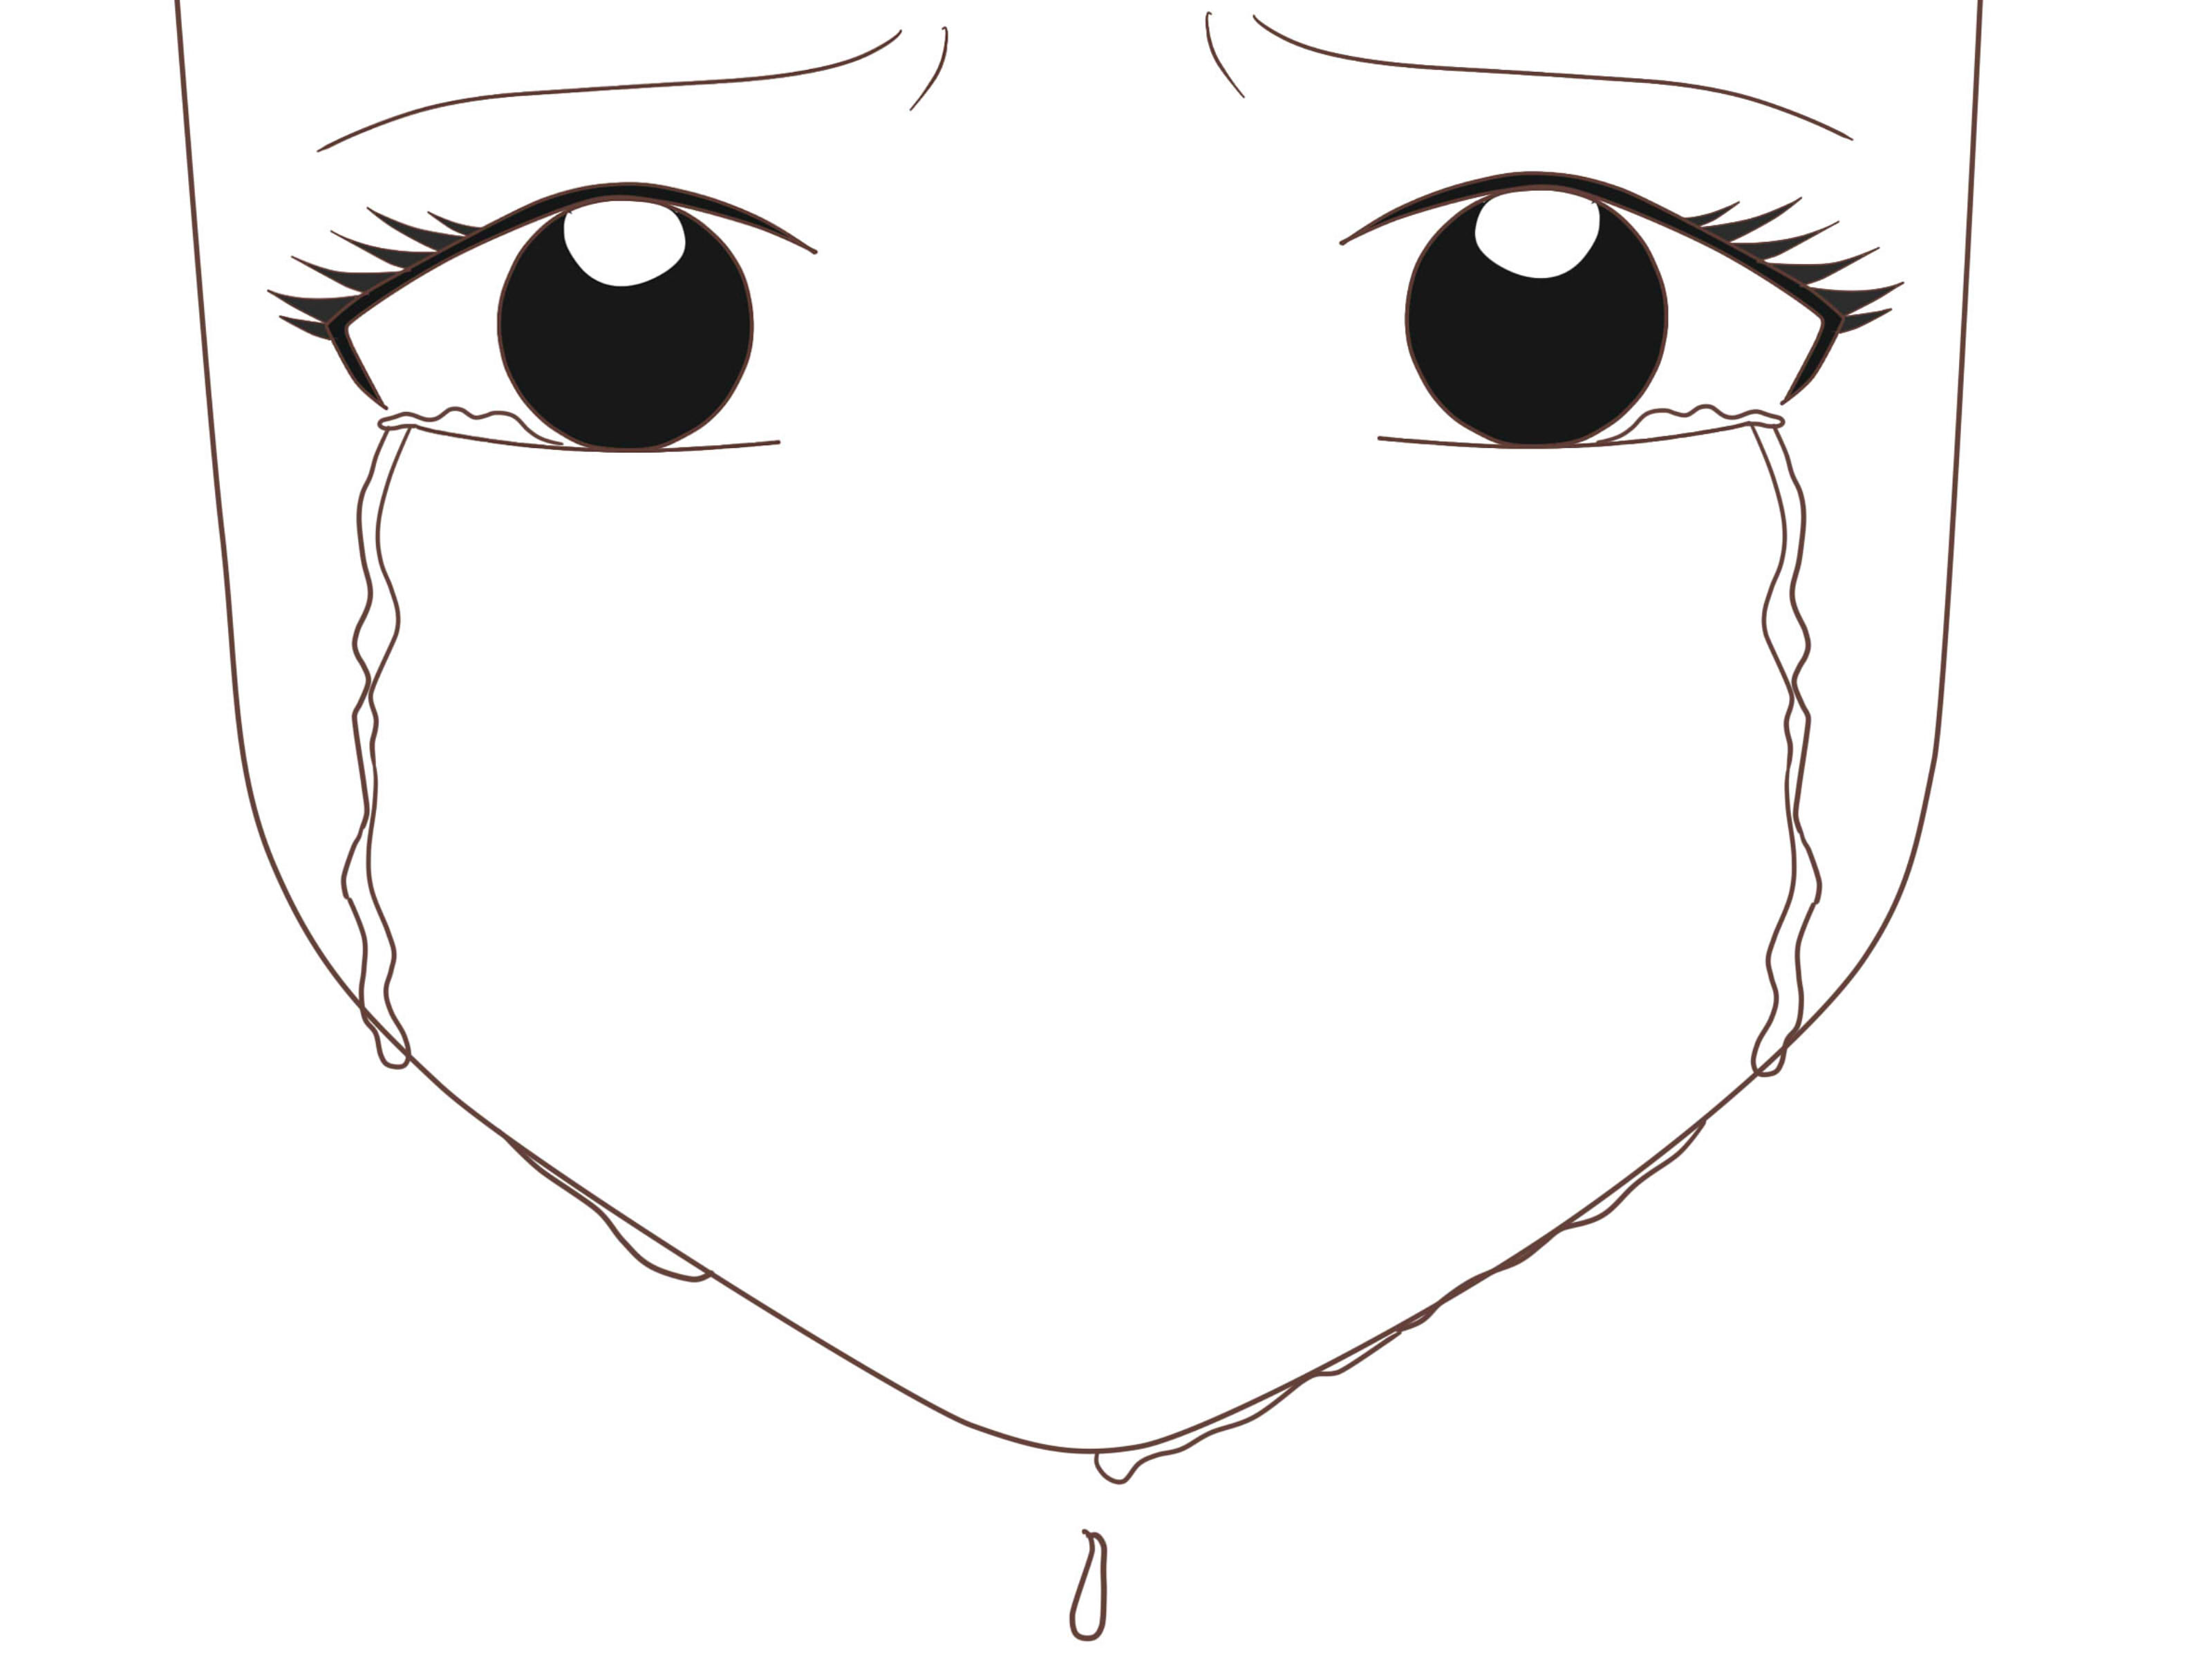 How To Draw An Anime Eye Crying 7 Steps With Pictures